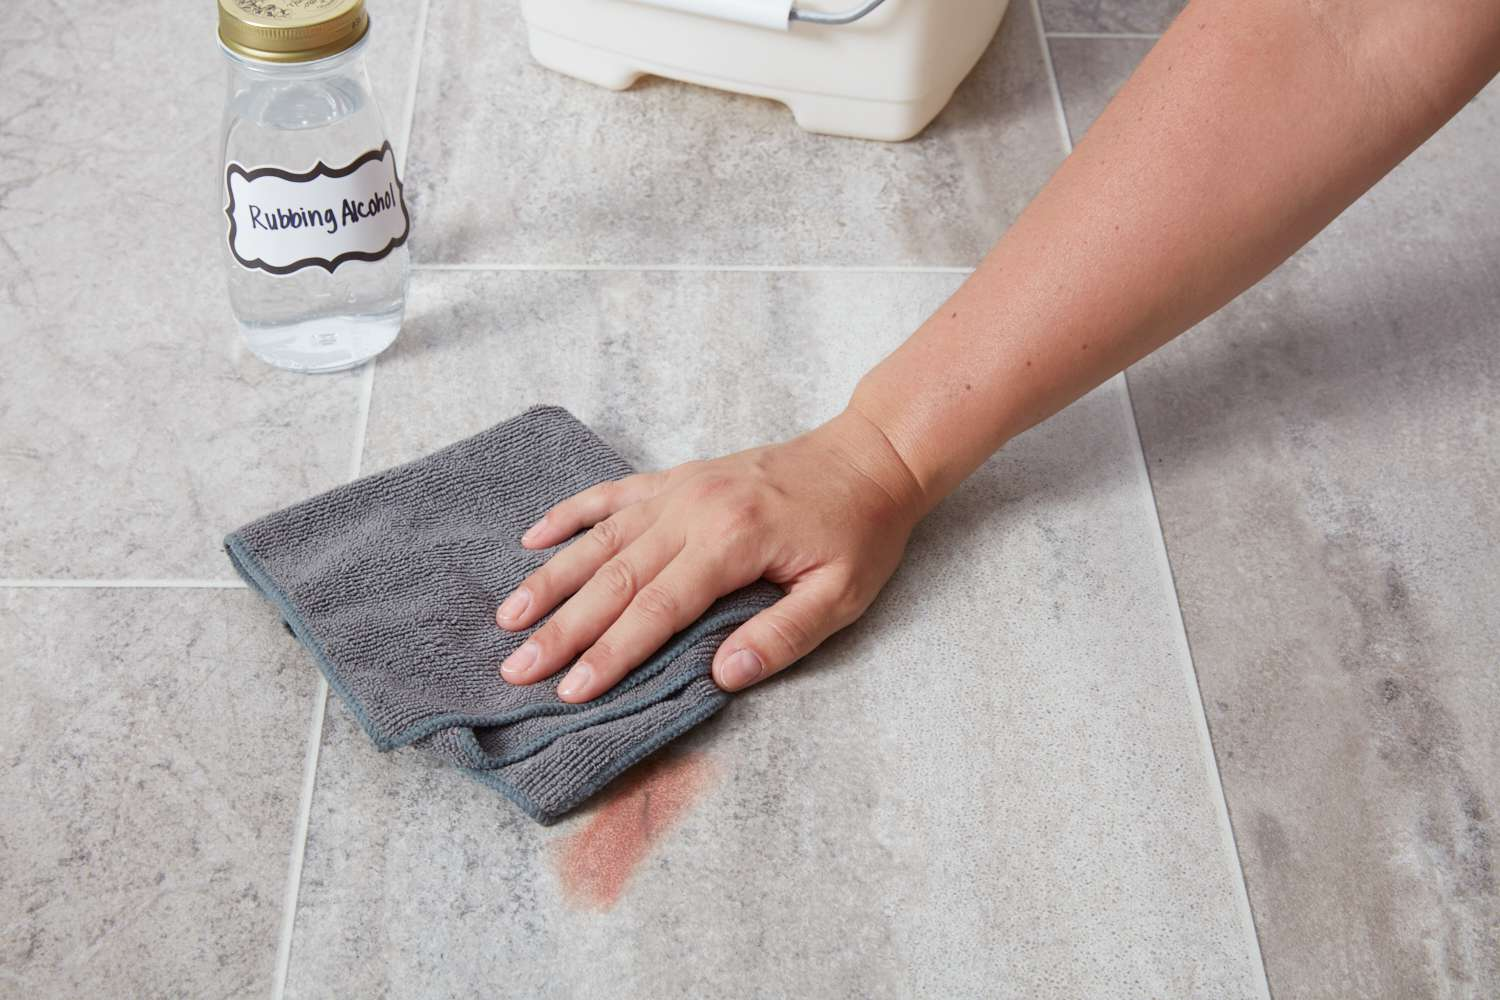 Scrubbing vinyl floor stain with rubbing alcohol and microfiber towel